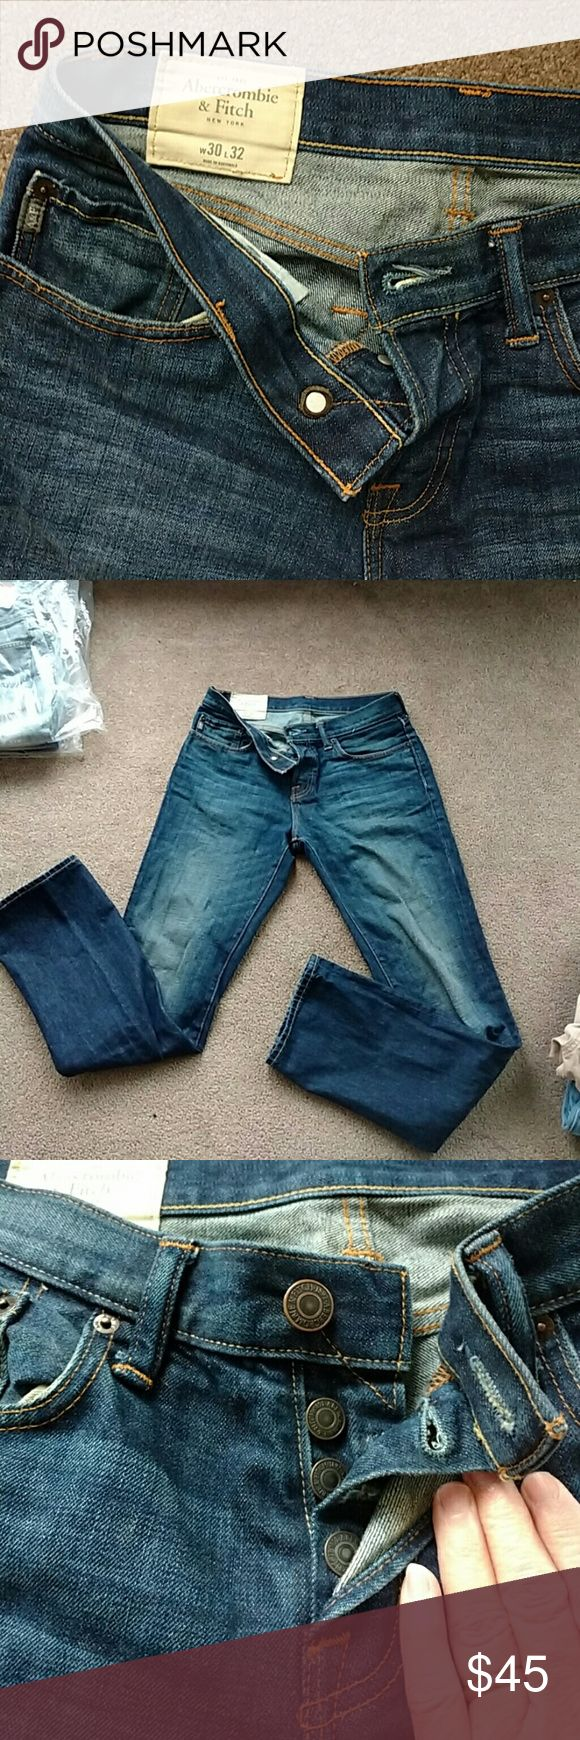 Abercrombie and Fitch mens jeans In like new condition only worn a couple times button fly  no holes Abercrombie and Fitch Jeans Slim Straight